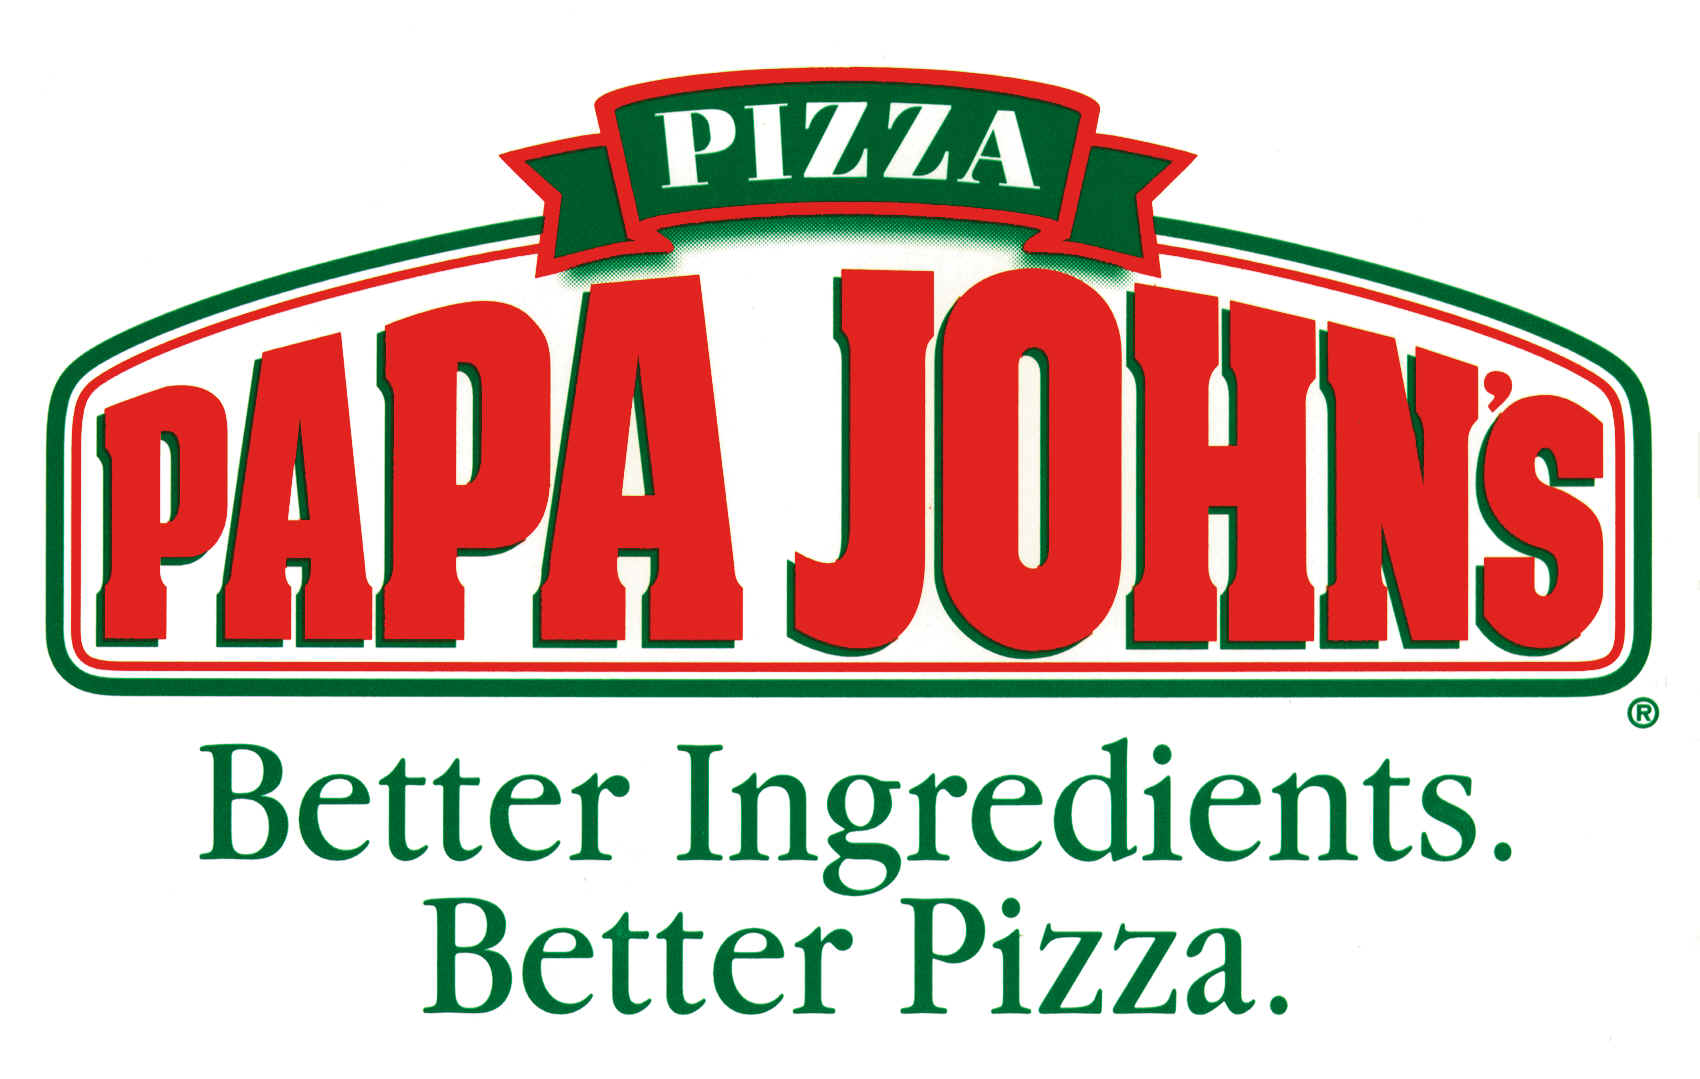 http://semodining.files.wordpress.com/2010/12/papa_johns_logo.jpg